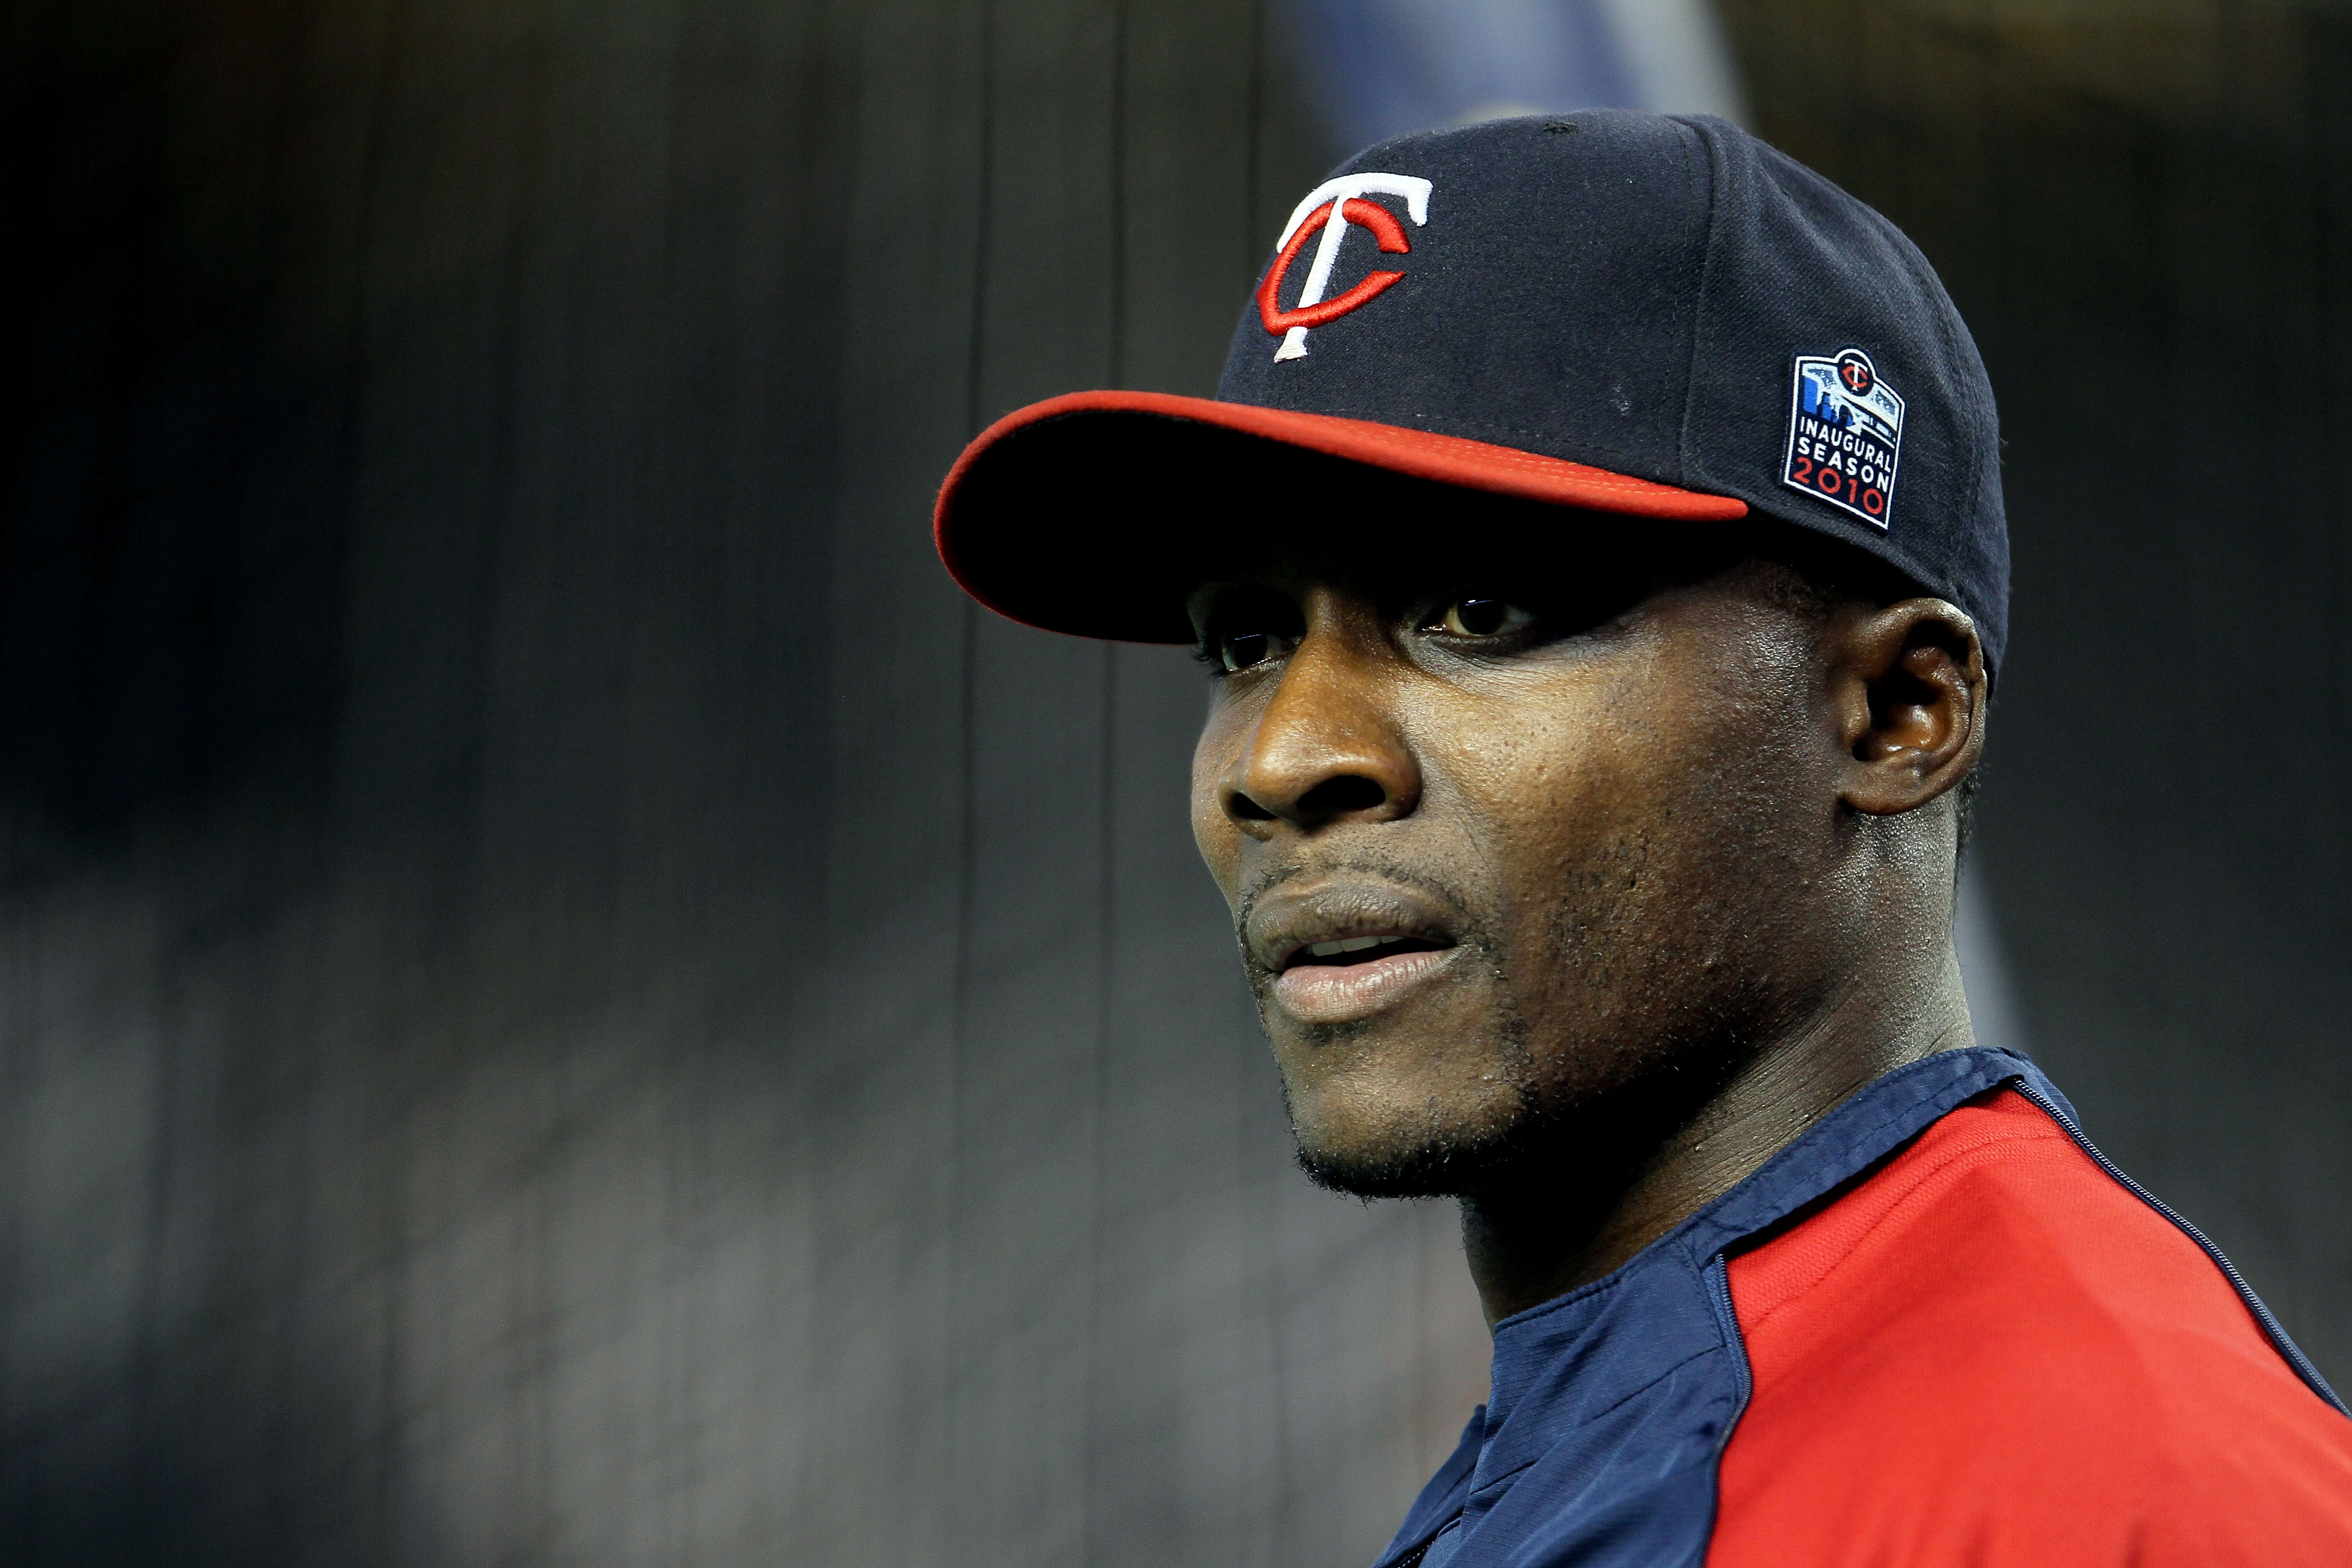 NEW YORK - OCTOBER 09:  Orlando Hudson #1 of the Minnesota Twins looks on during batting practice against the New York Yankees  during Game Three of the ALDS part of the 2010 MLB Playoffs at Yankee Stadium on October 9, 2010 in the Bronx borough of New Yo